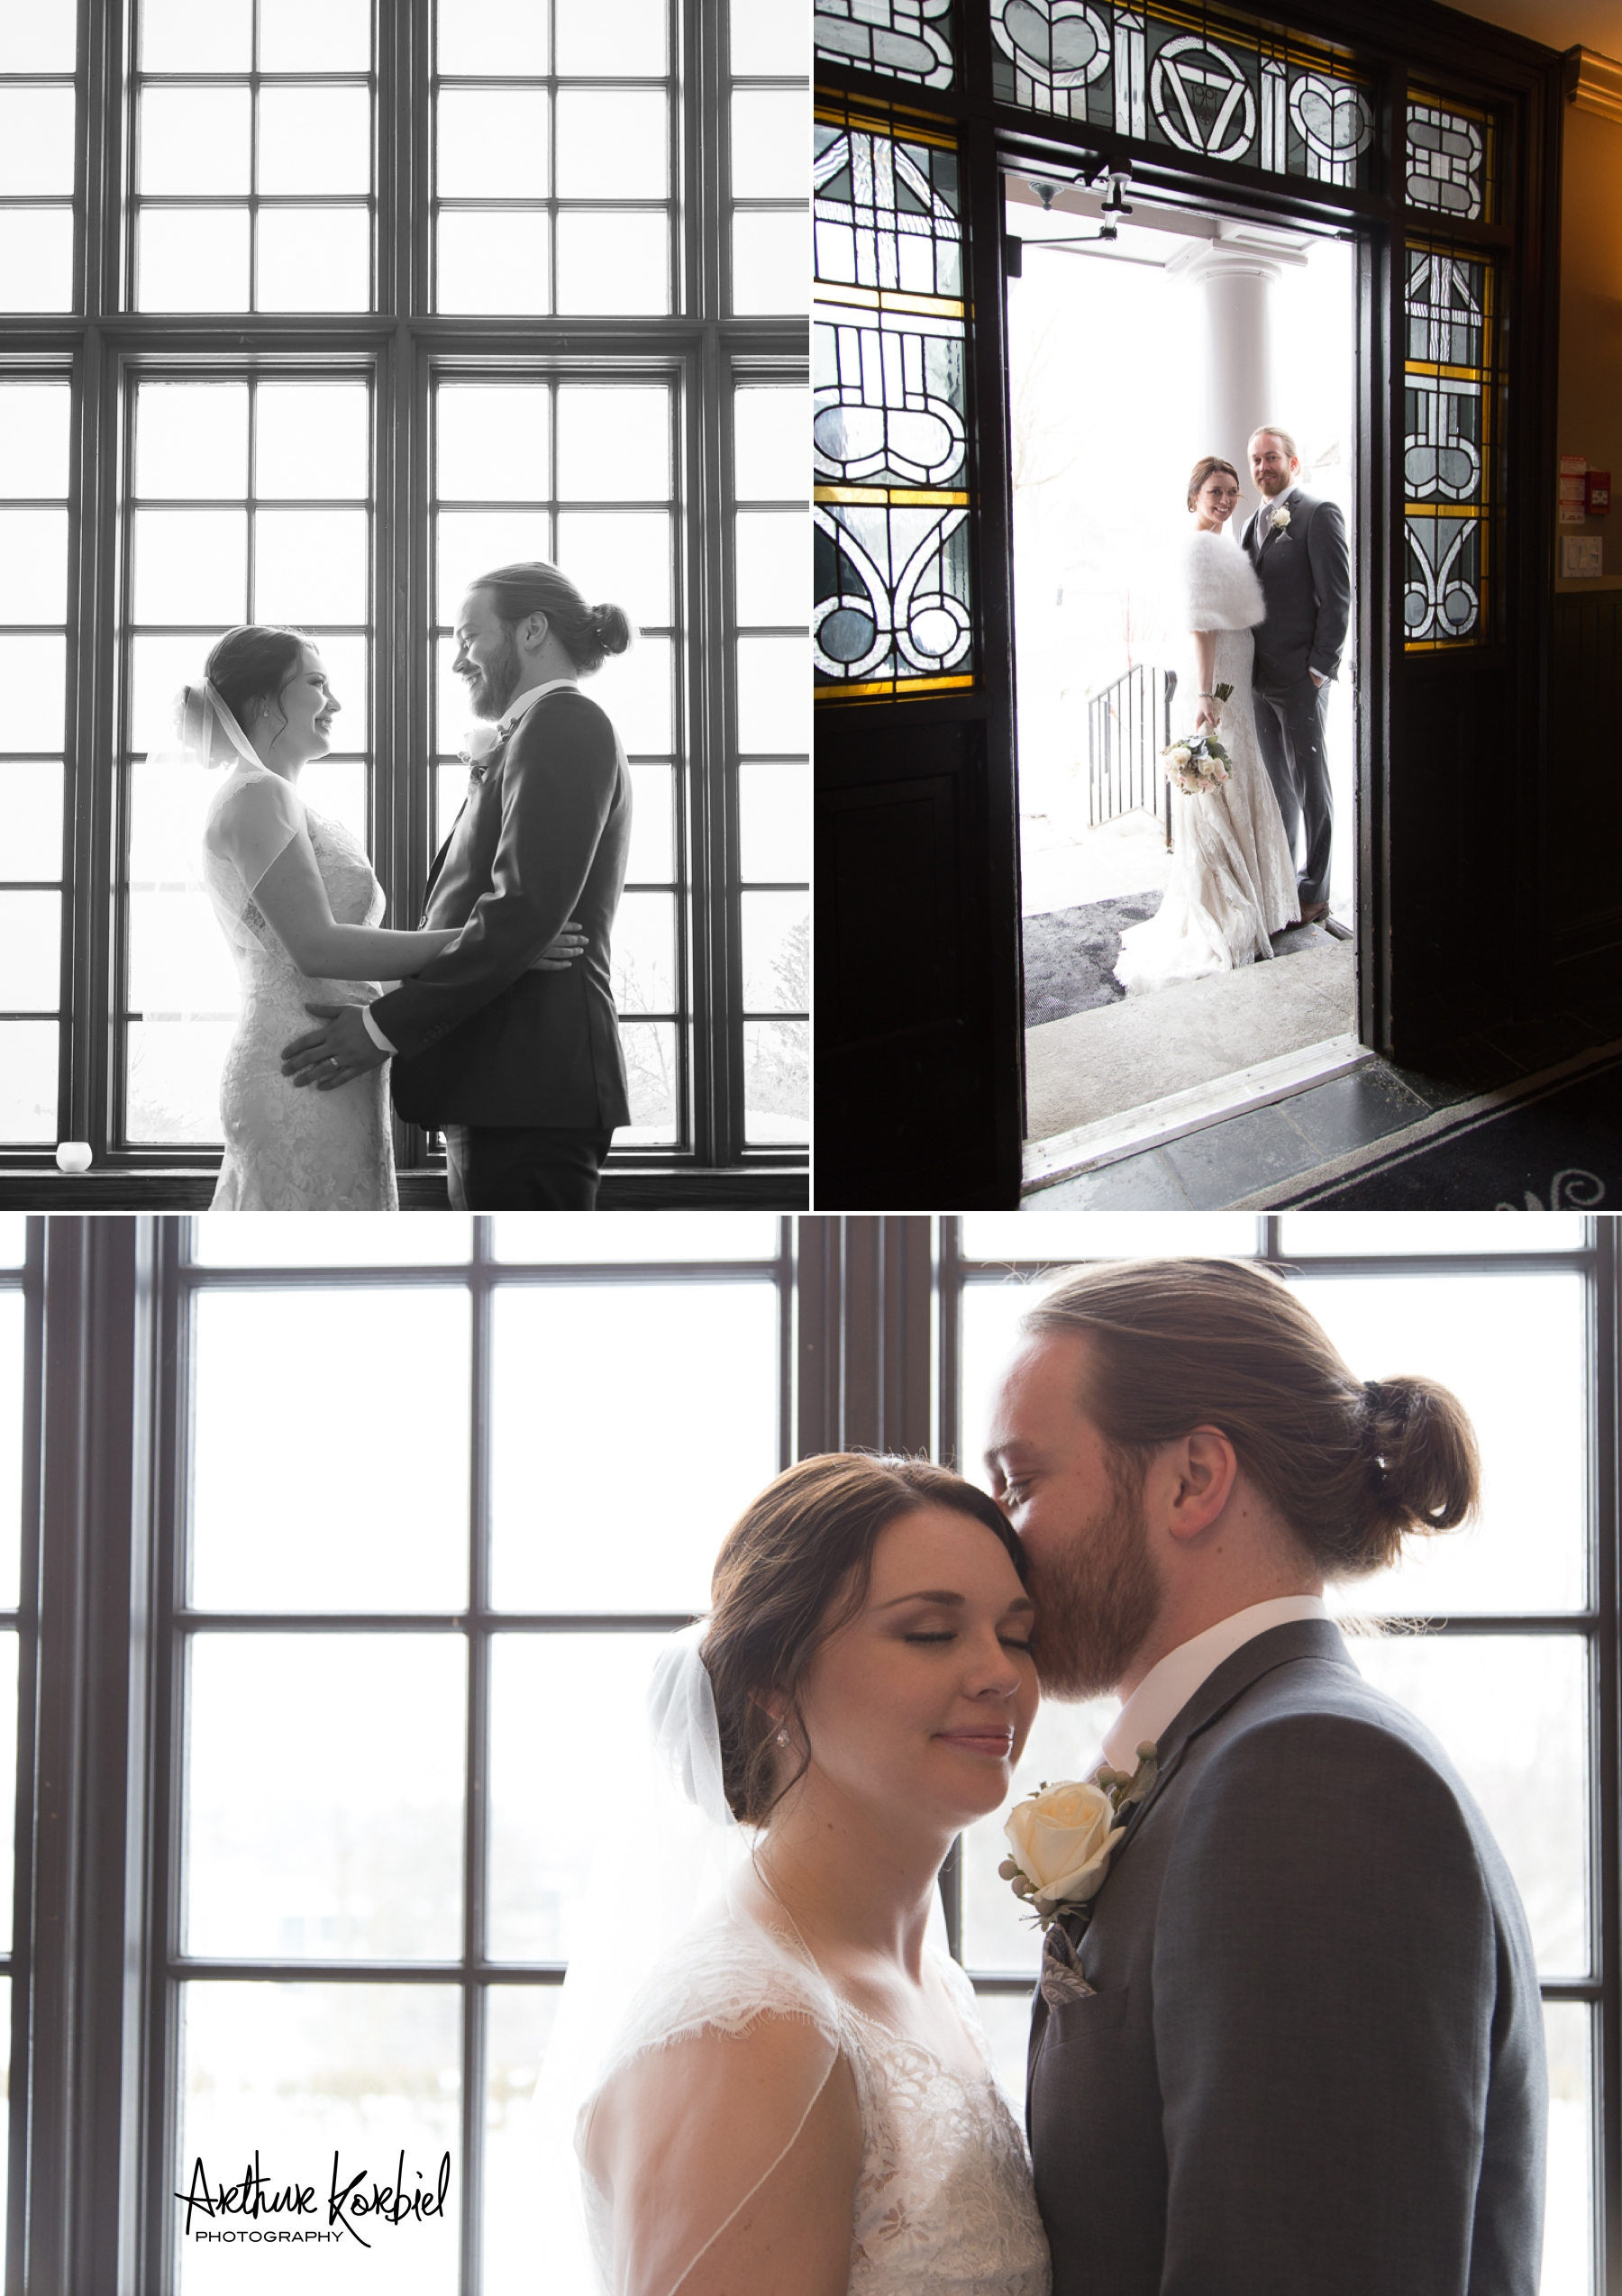 Arthur Korbiel Photography - London Wedding Photographer - Windermere Manor _005.jpg